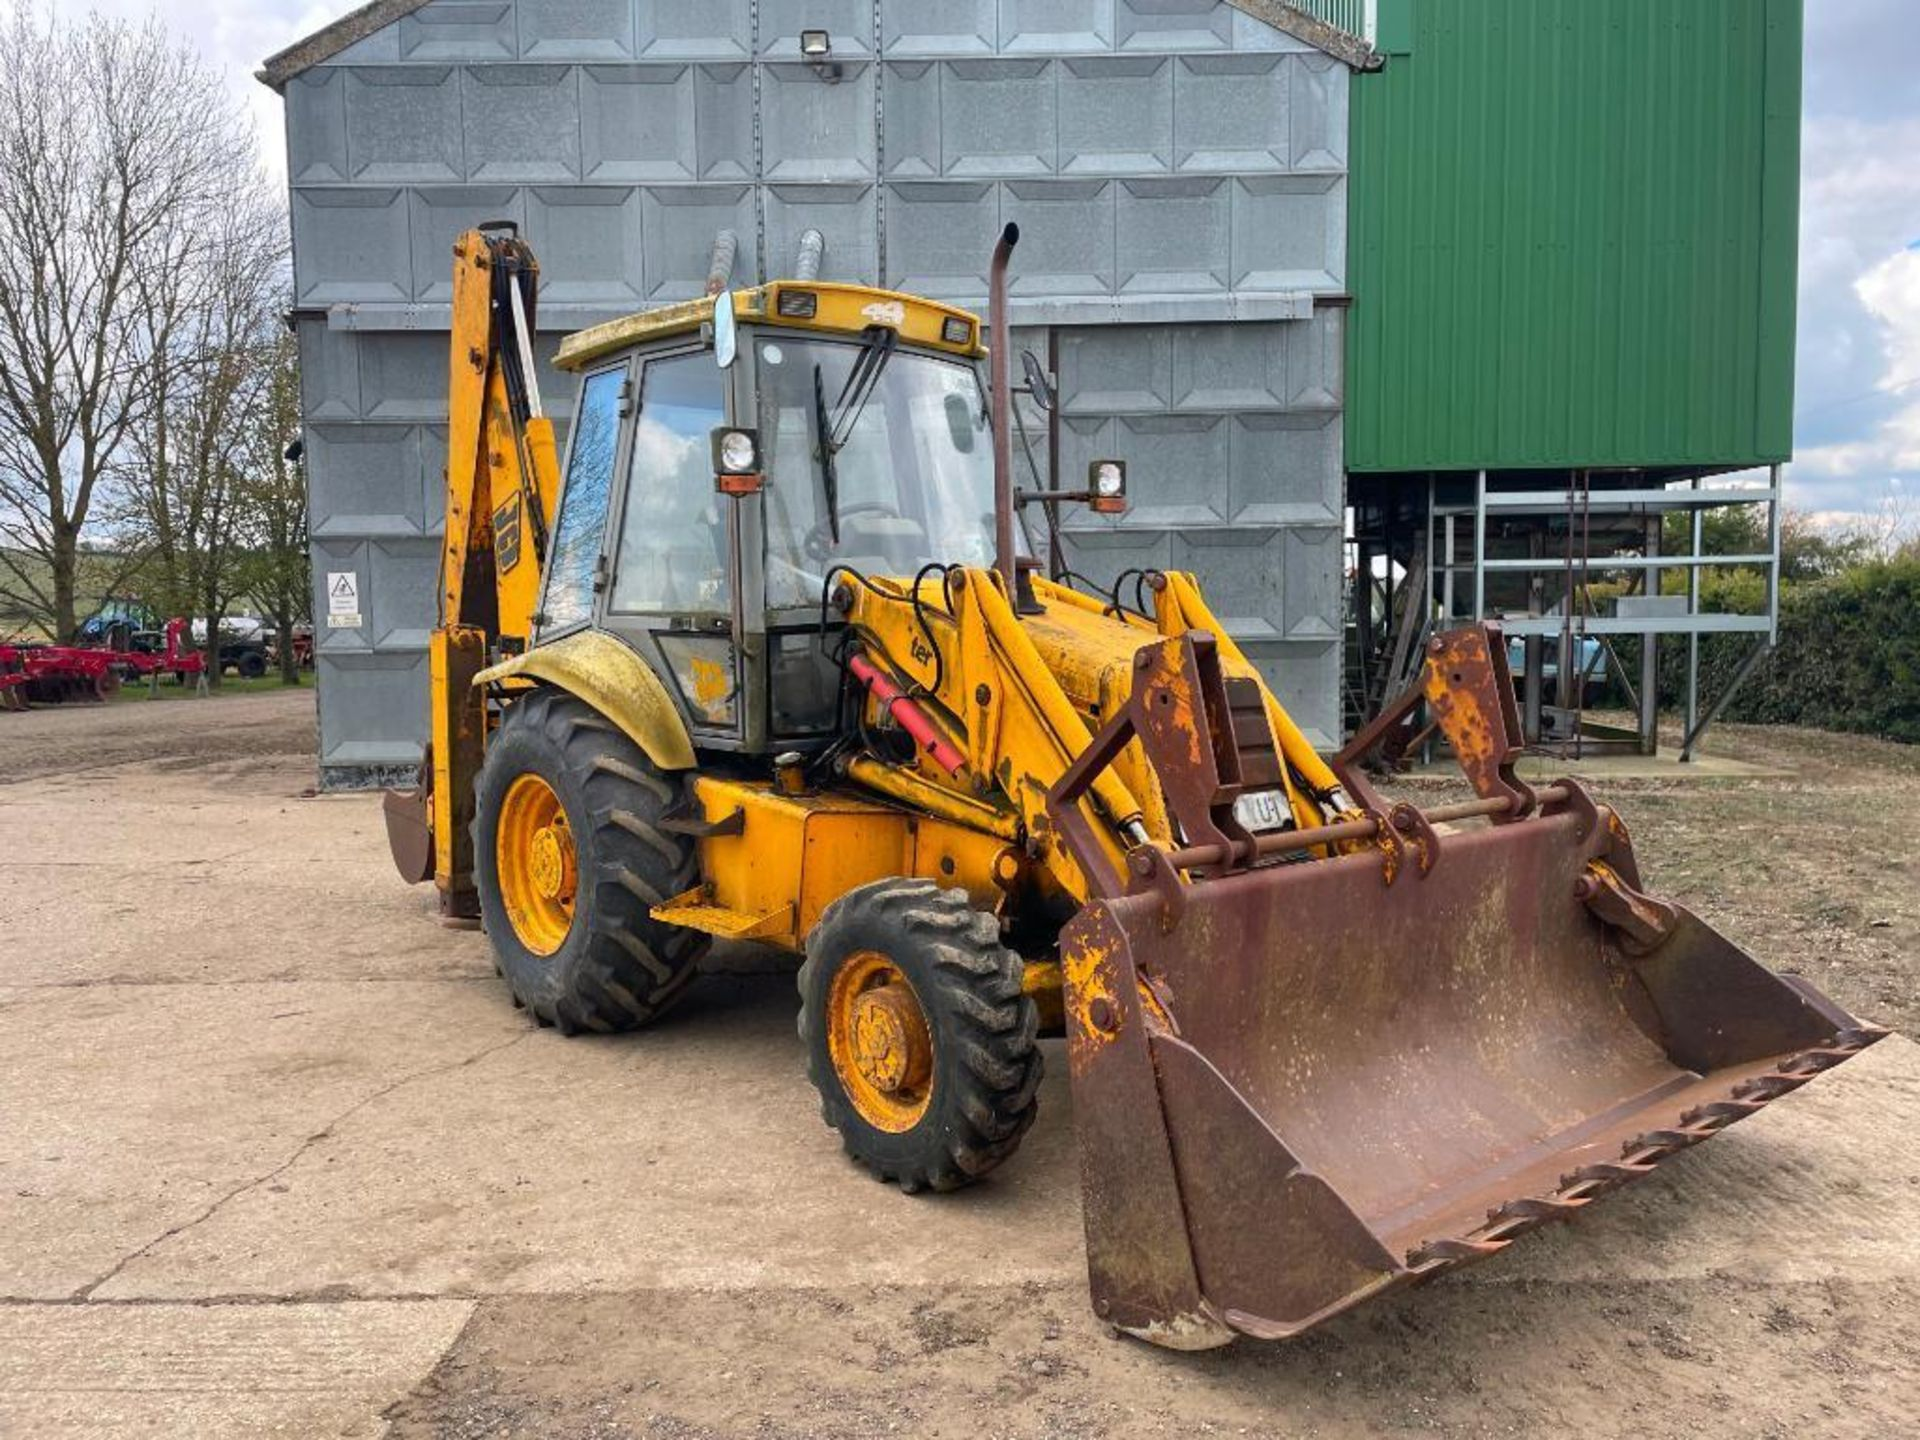 1993 JCB 3CX Sitemaster 4wd back hoe loader with 3 in 1 bucket on 10.5/80-18 front and 18.4-26 rear - Image 3 of 14